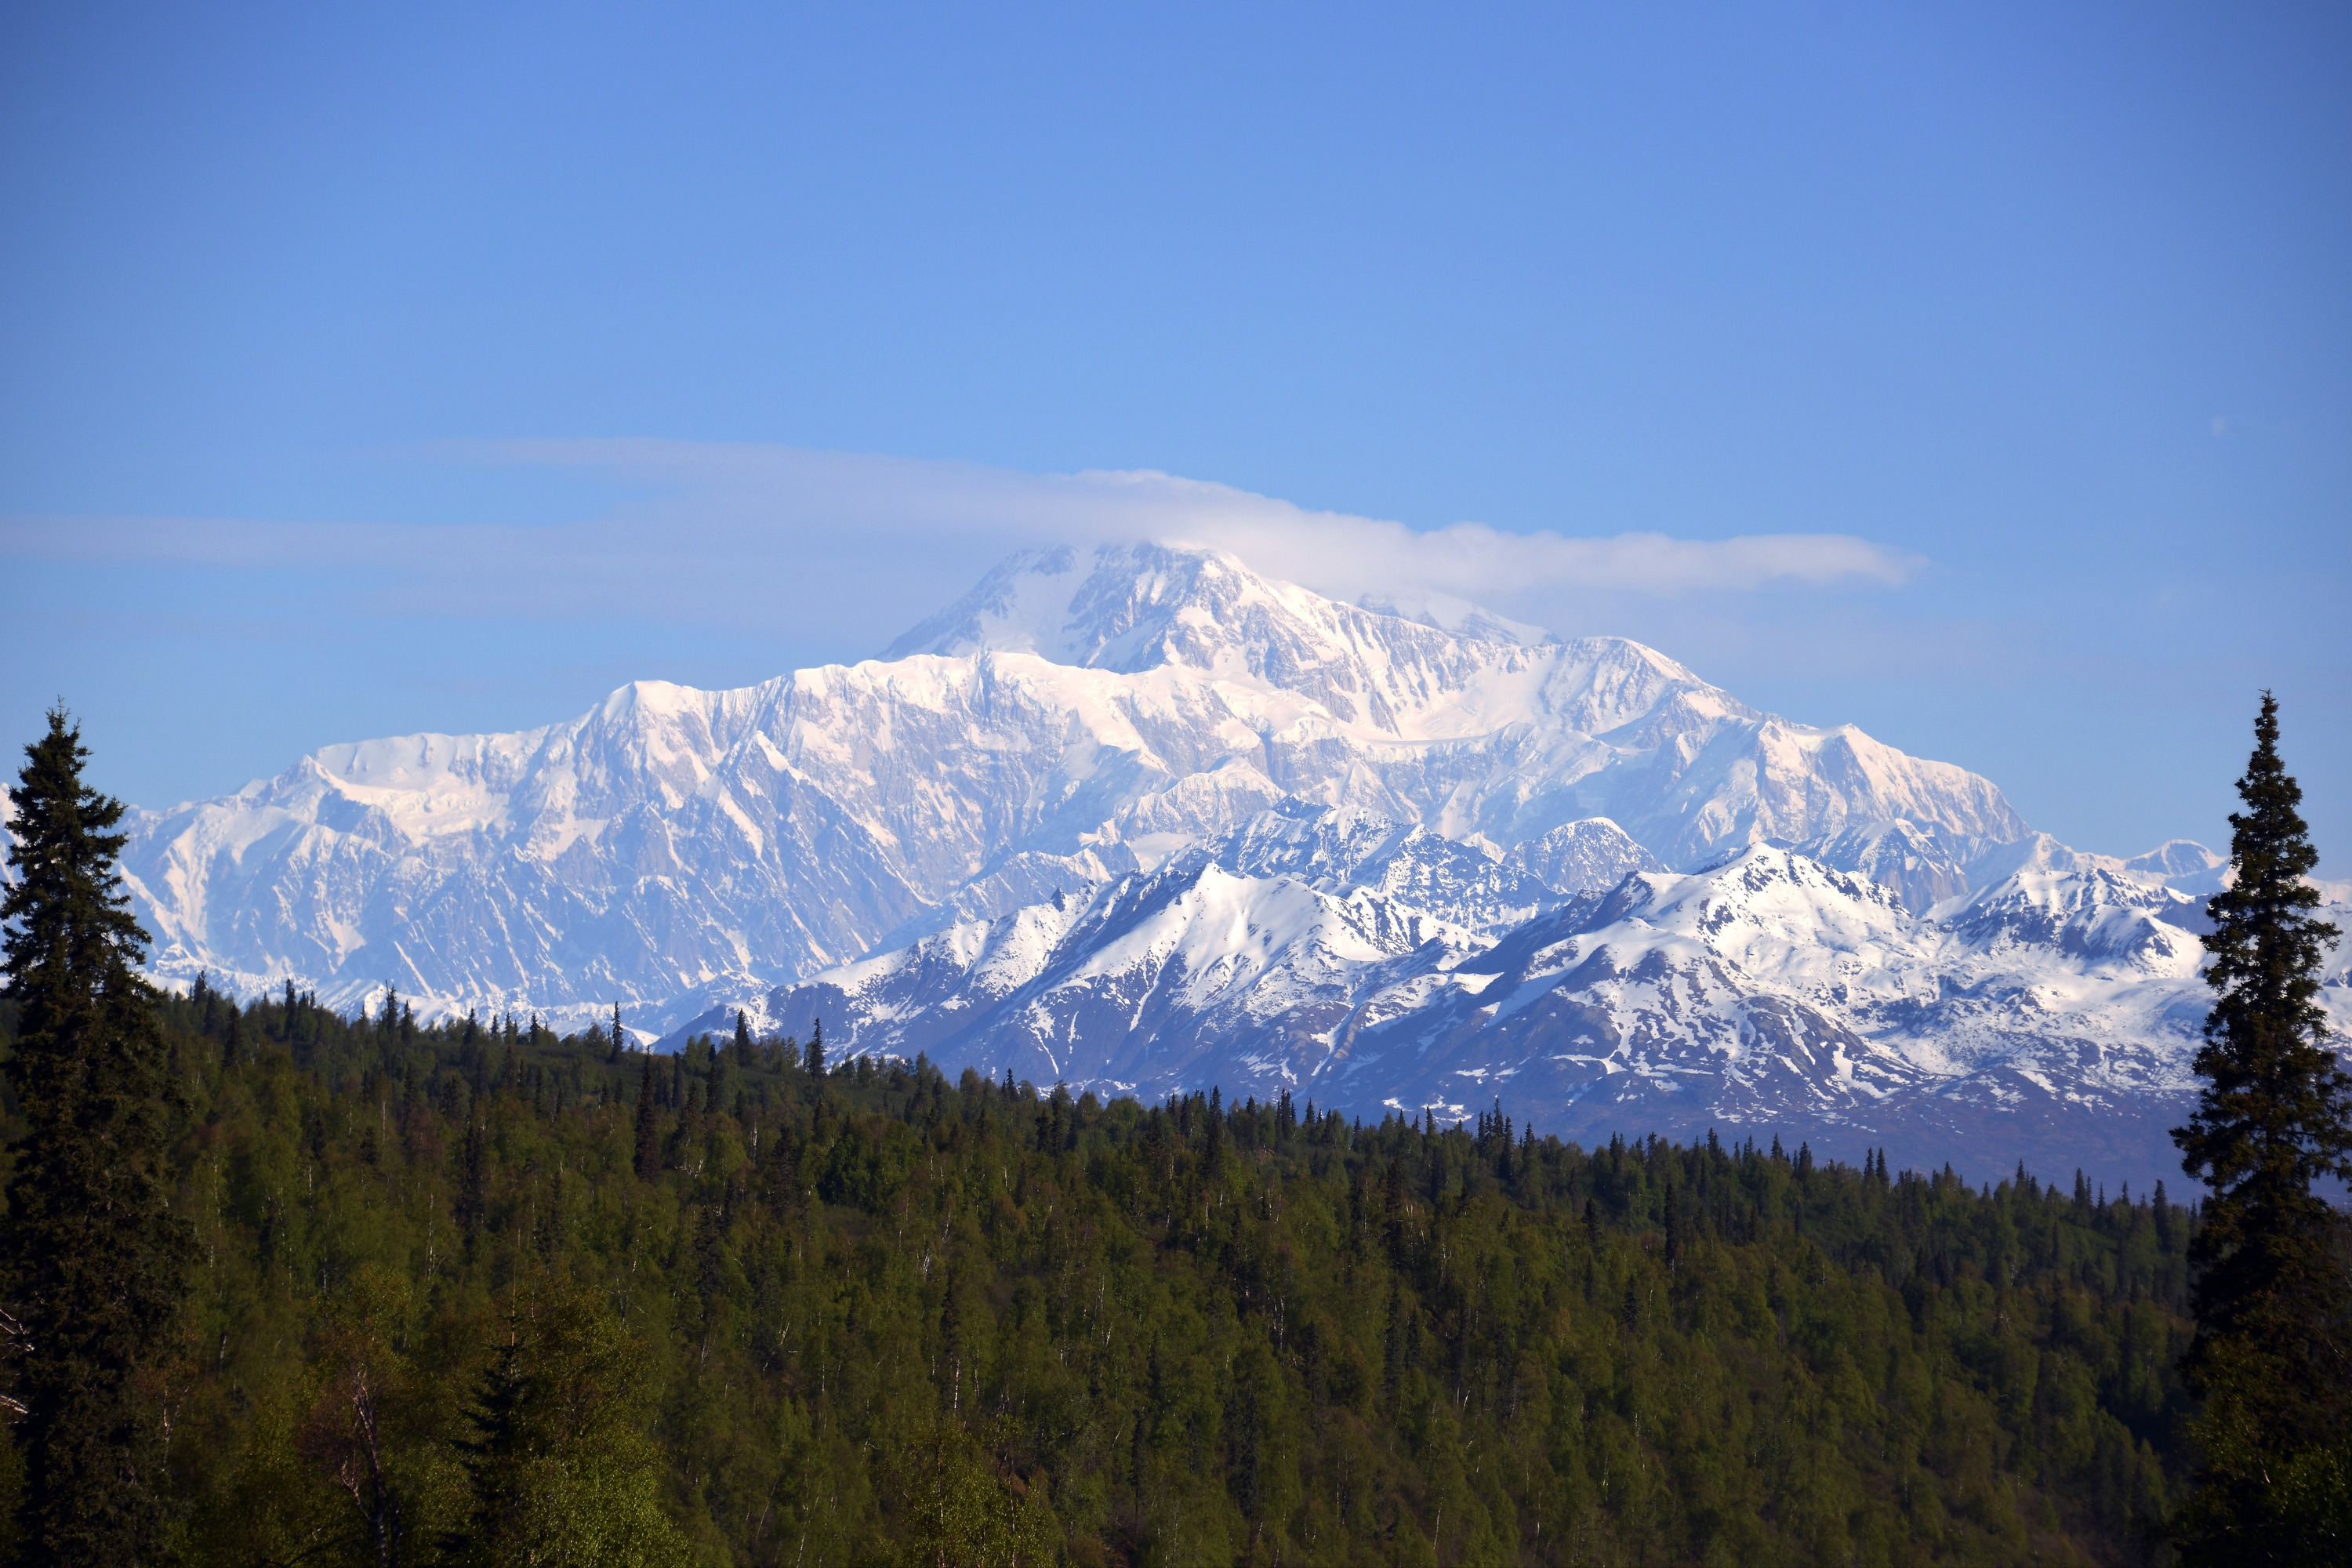 North America's Highest Peak Mt. McKinley, Denali National Park